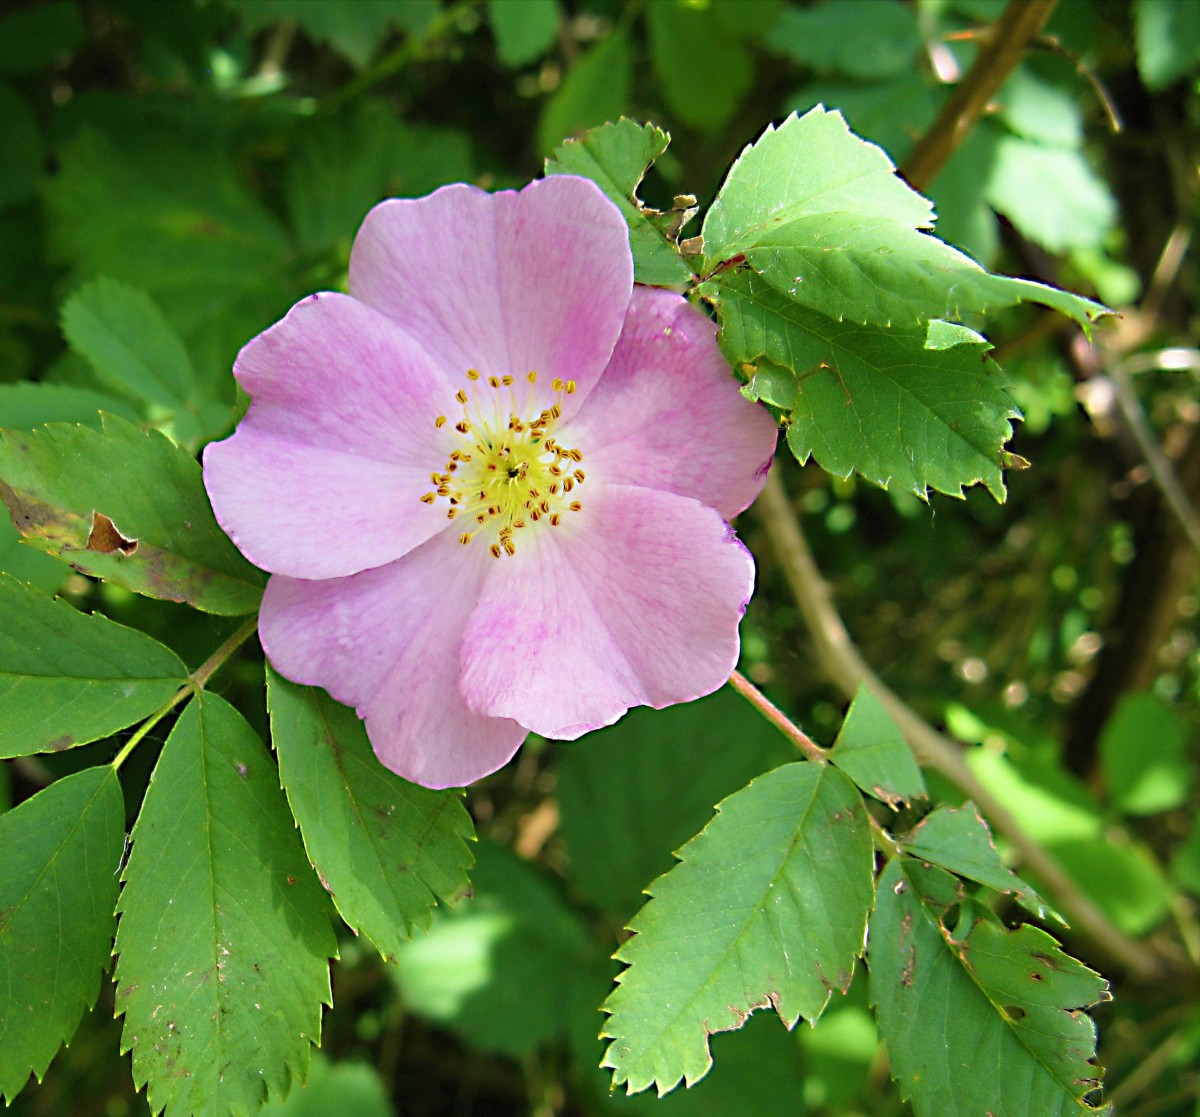 A Nootka rose in bloom; the ovaries of the flowers become fruits, or  rose hips